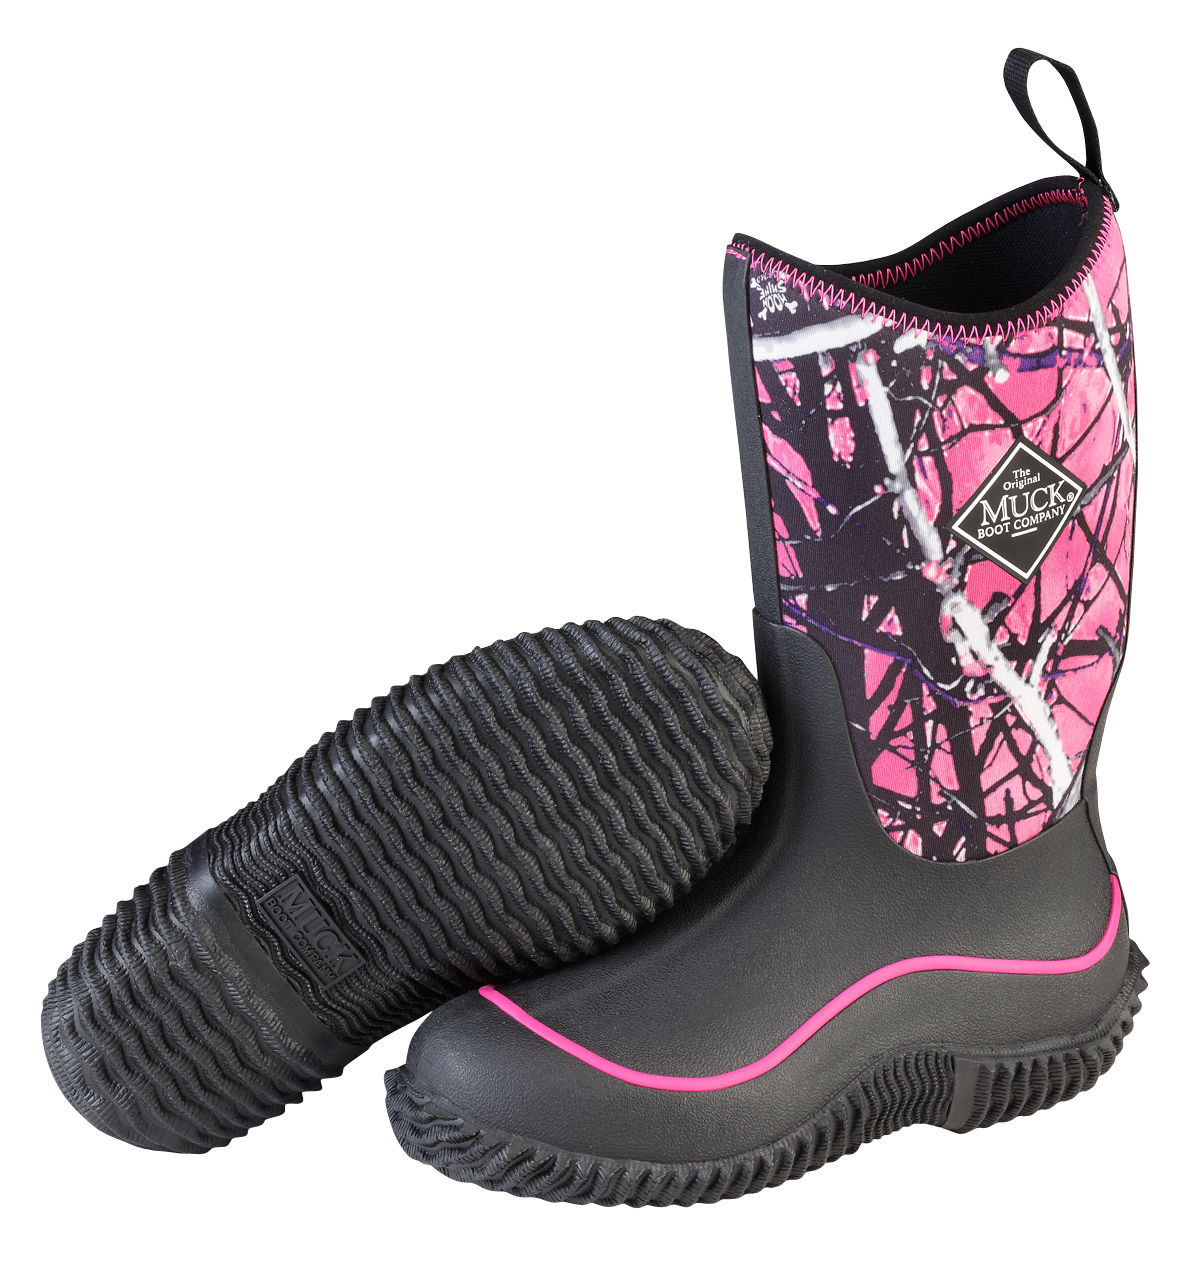 MuckBoots Kids Hale Black Muddy Camo Snow Boot Girl Rubber Sole Breathable C8 by Muck Boots